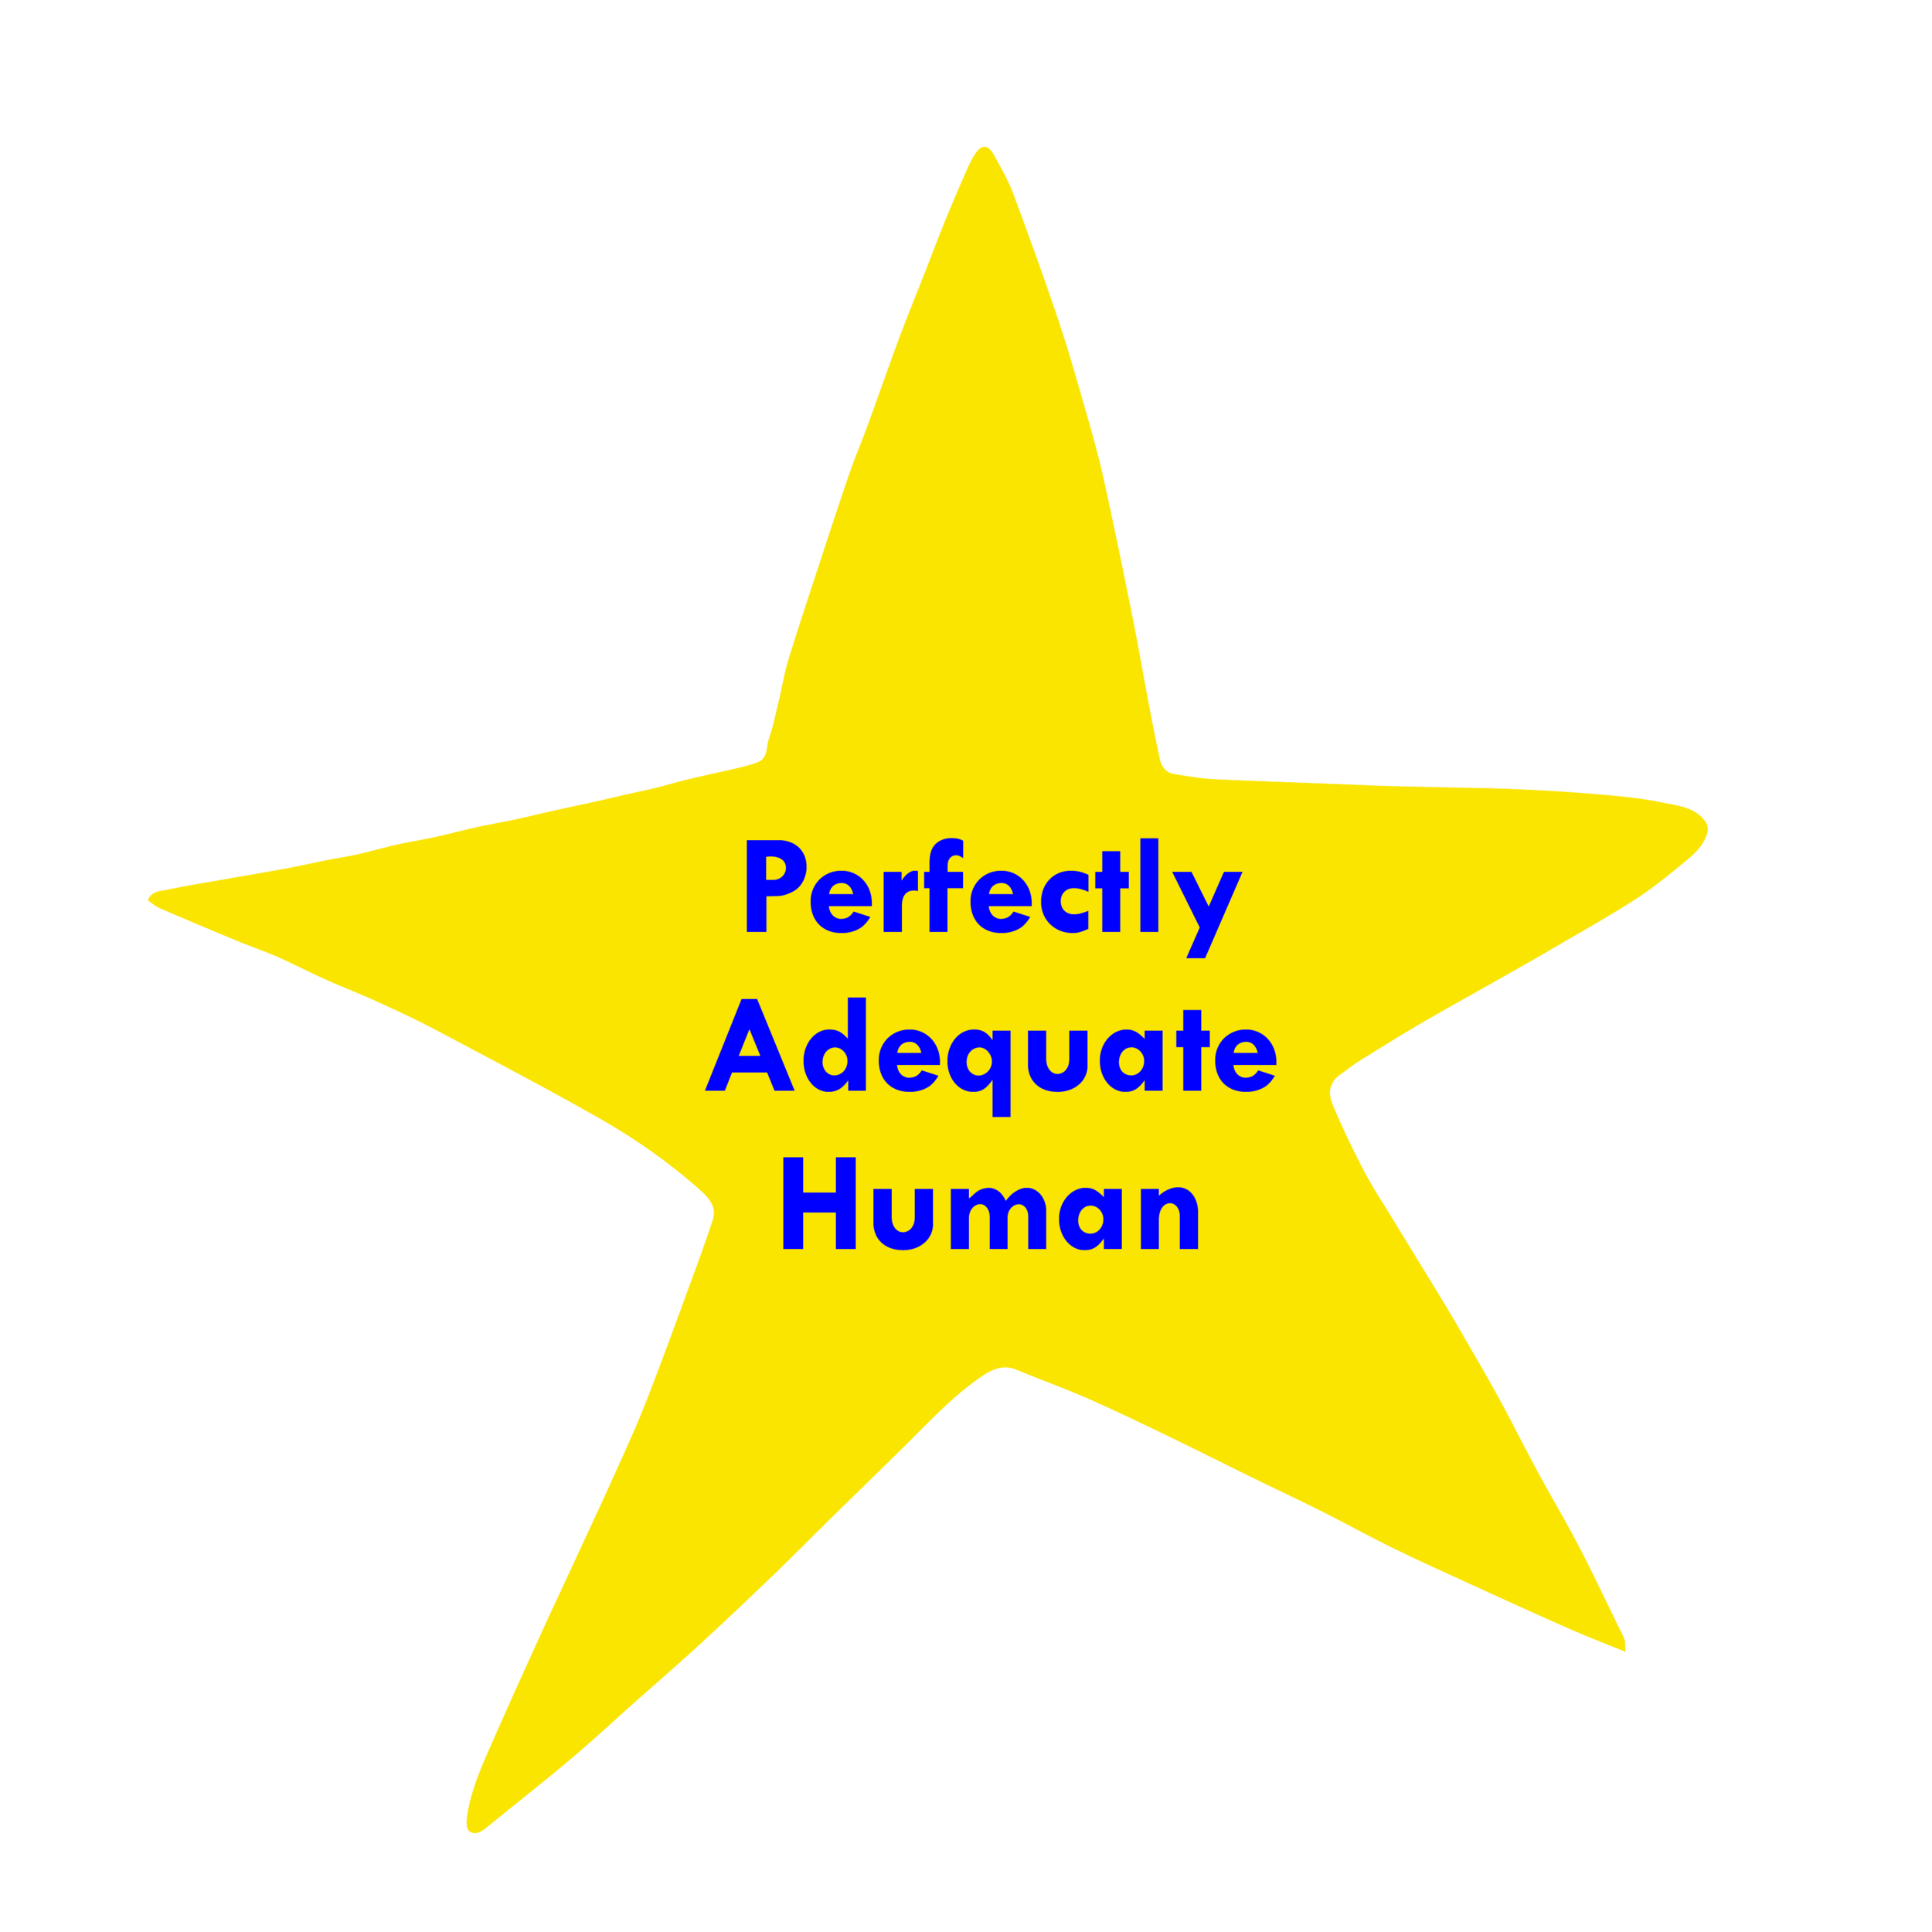 new-star-vector-5-Perfectly-Adequate-Human-01.png